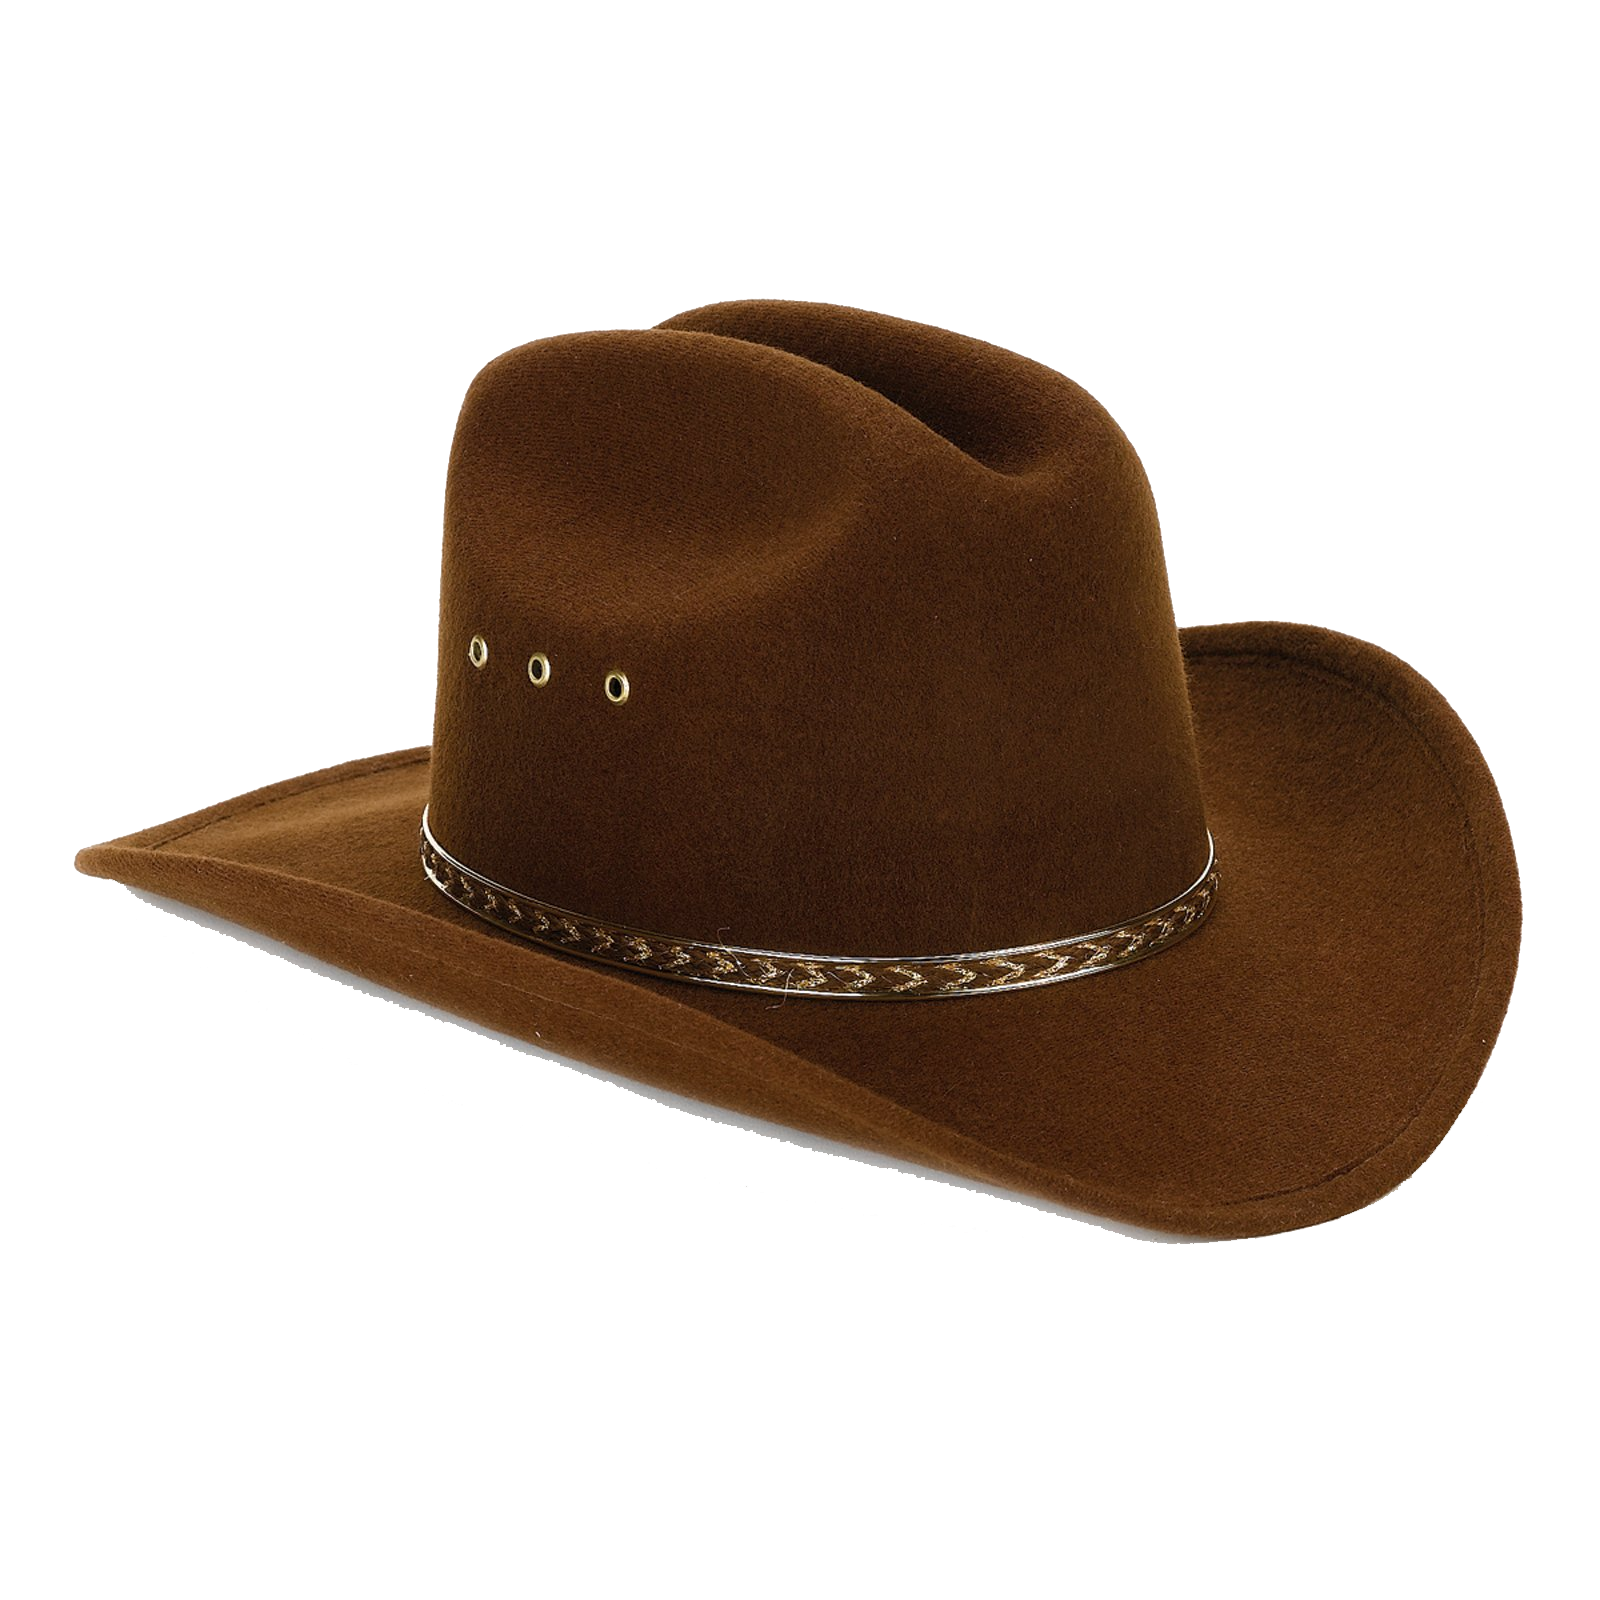 Cowboy hat crown clipart clipart free download Cowboy Hat PNG Transparent Images | PNG All clipart free download